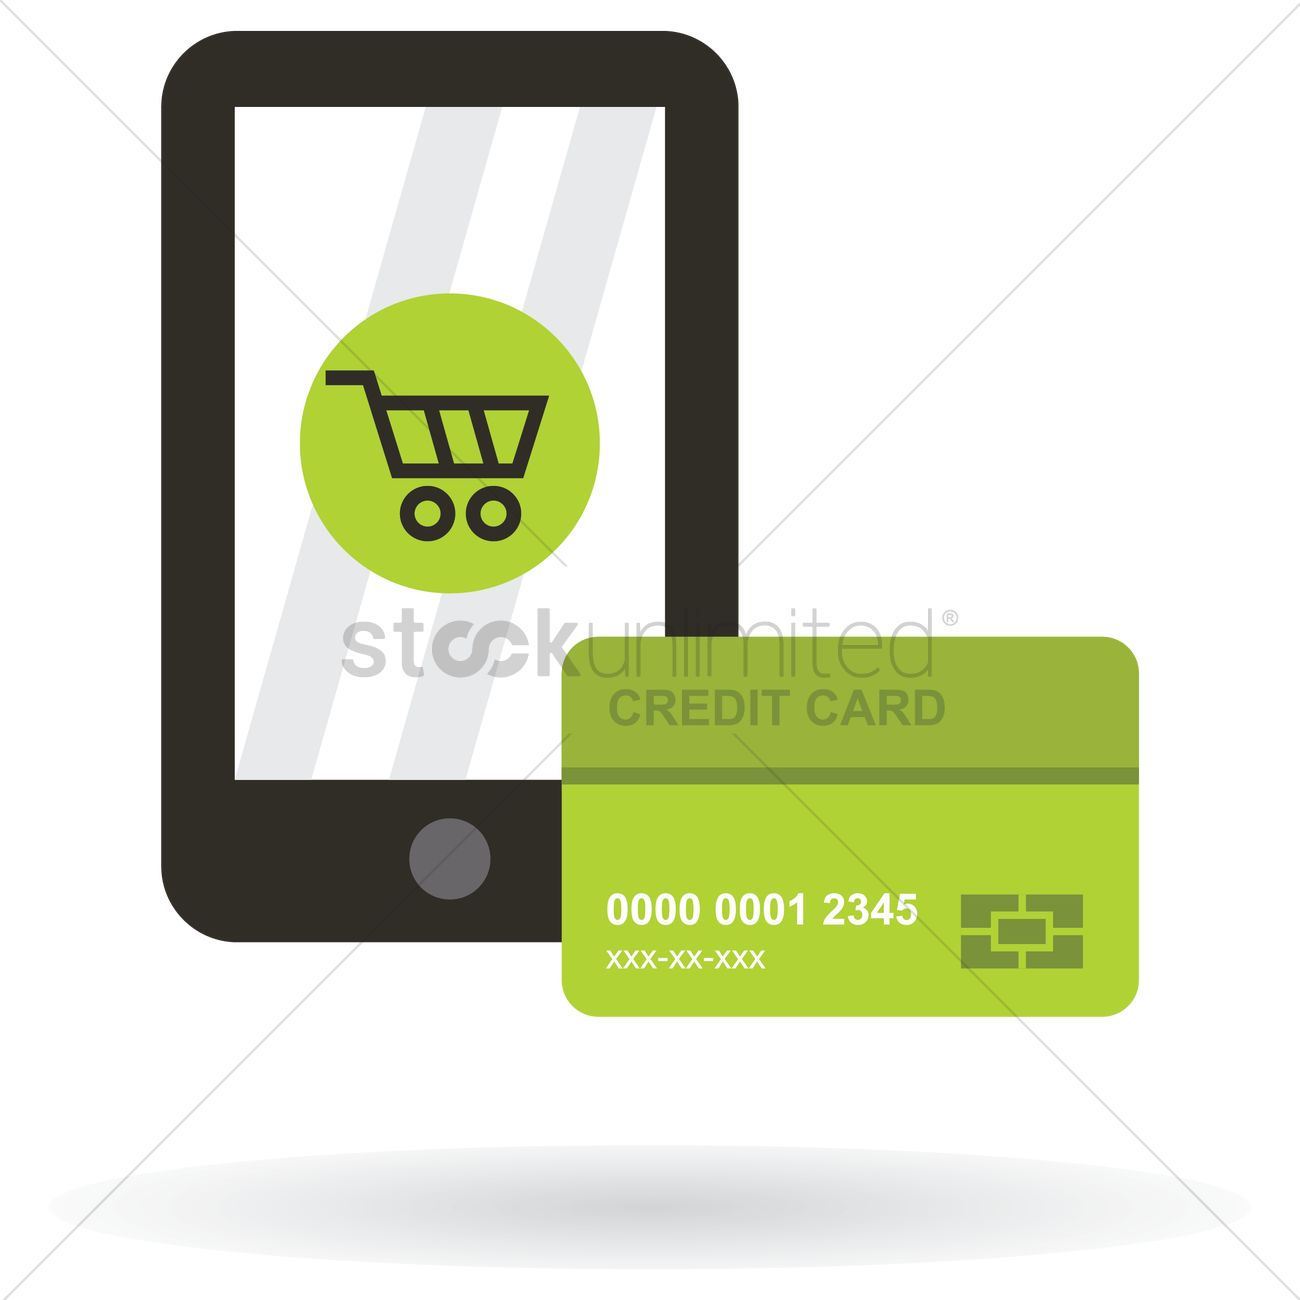 Stores Credit Card Mobile Phone With Shopping Cart Icon And A Credit Card